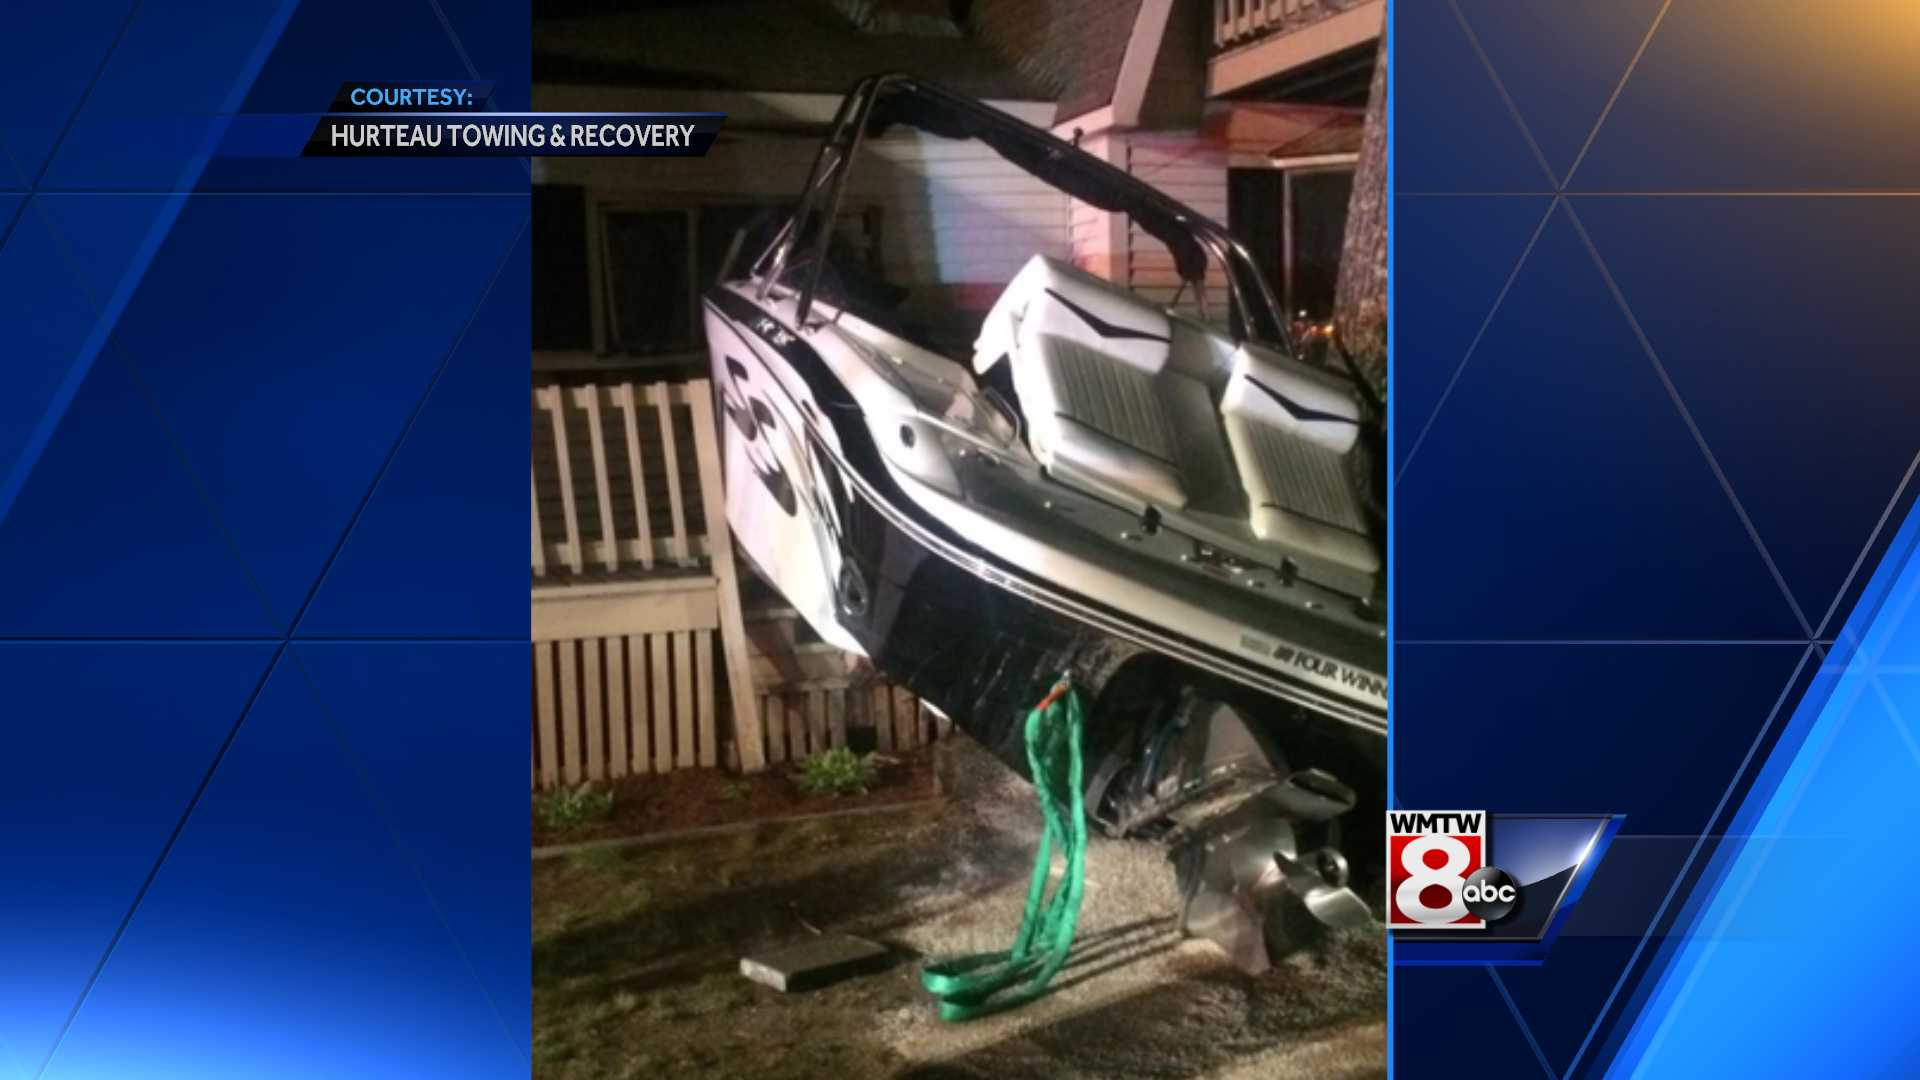 Boat that crashed into house on NH lake stolen from nearby mooring